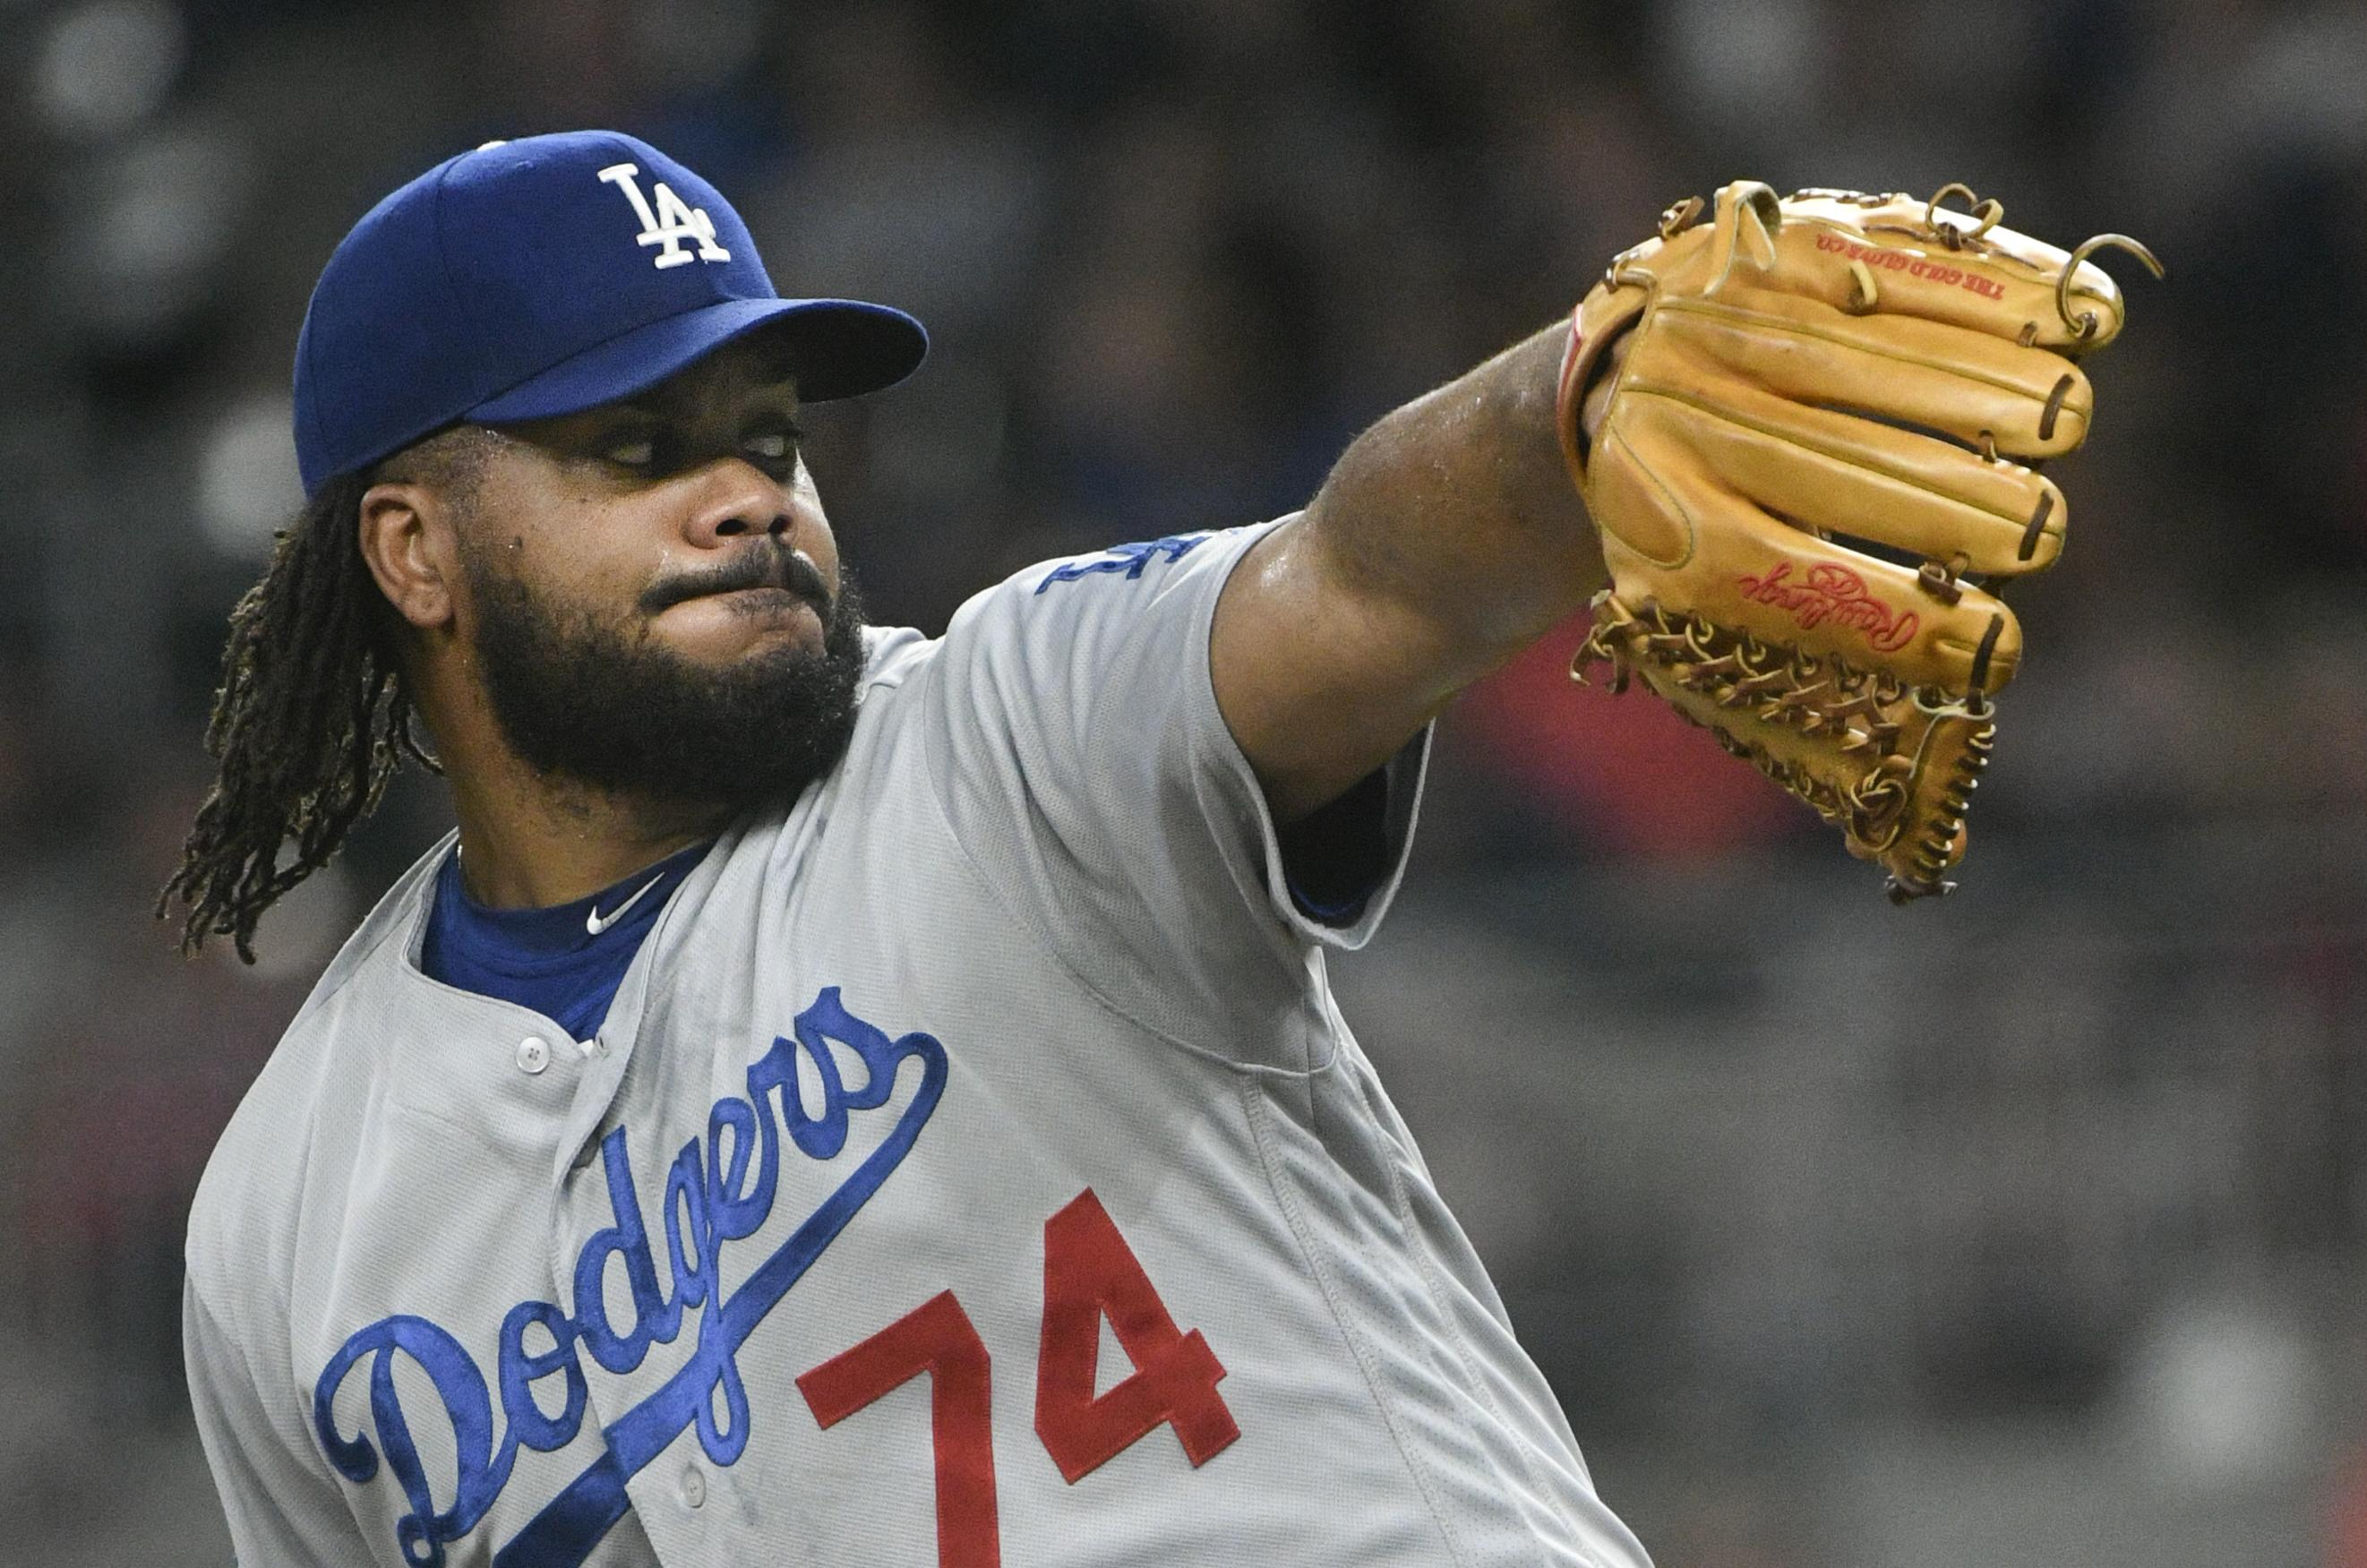 c0b5c0745 Los Angeles Dodgers relief pitcher Kenley Jansen pitches against the  Atlanta Braves during the ninth inning